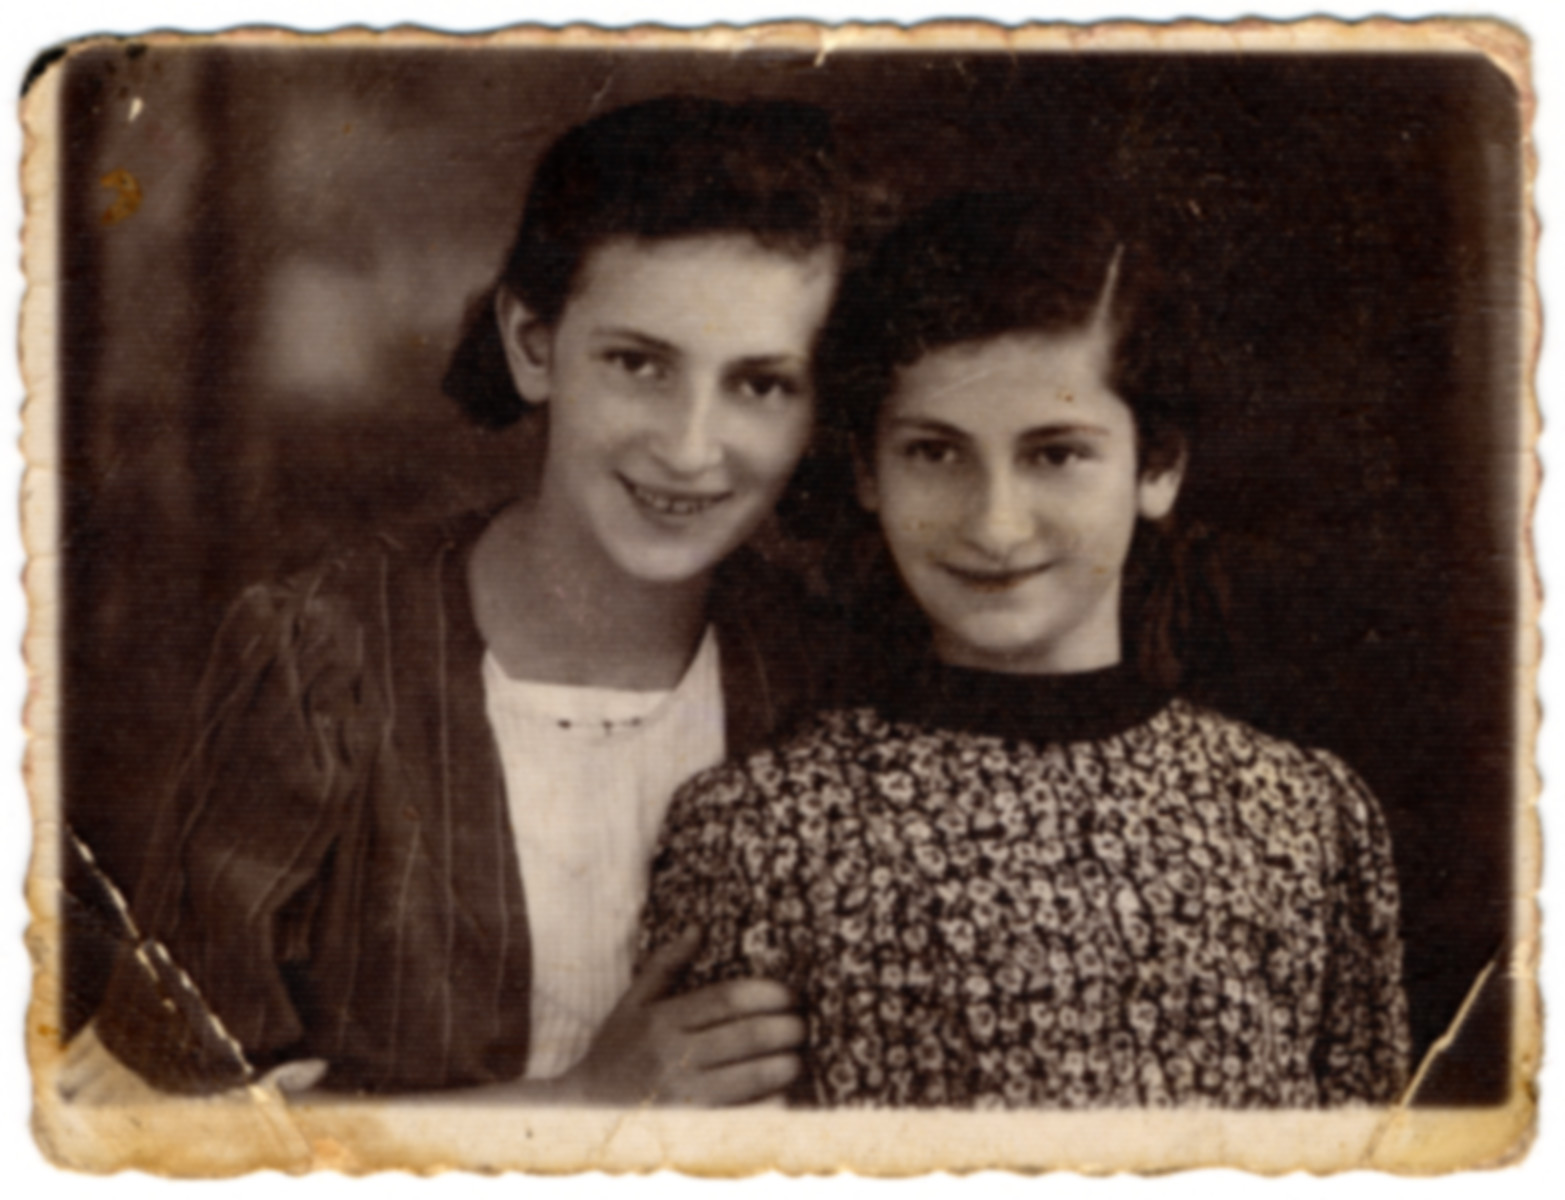 Two Polish Jewish sisters pose for a photograph.  Pictured are Sala and Sima Slomnicki.